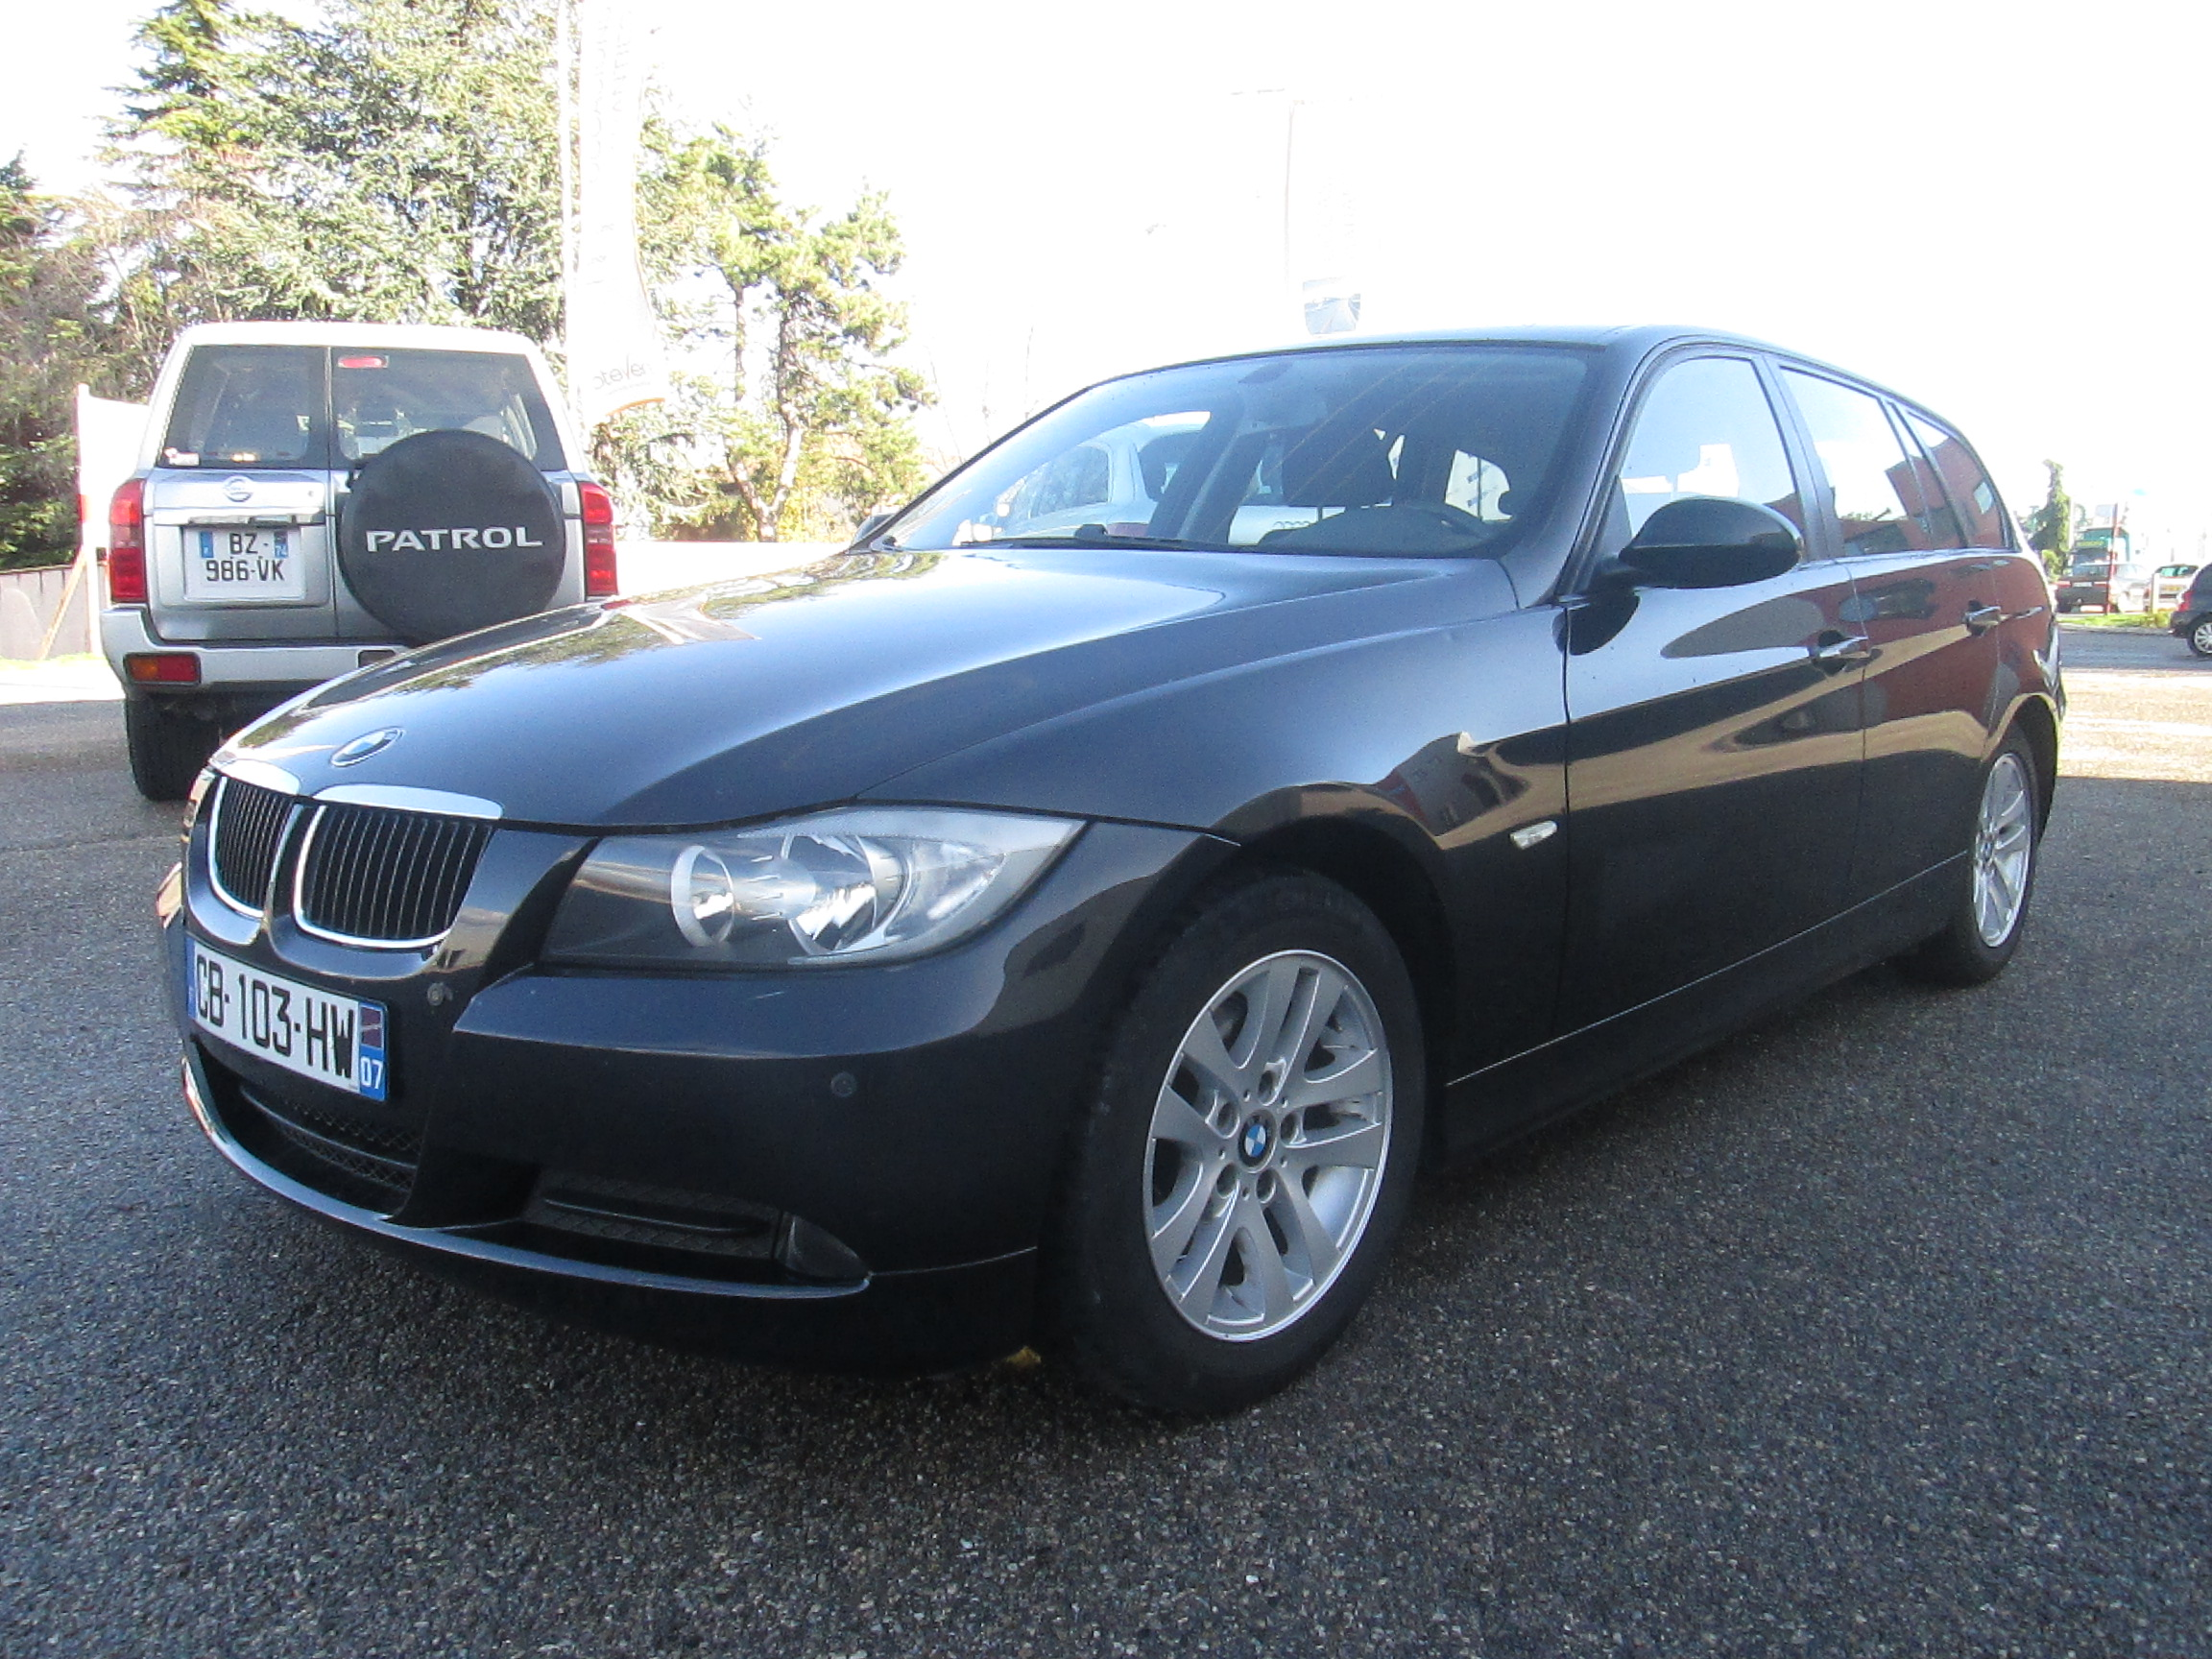 voiture bmw s rie 3 s rie 3 e91 touring 320d confort occasion diesel 2007 88197 km 11990. Black Bedroom Furniture Sets. Home Design Ideas